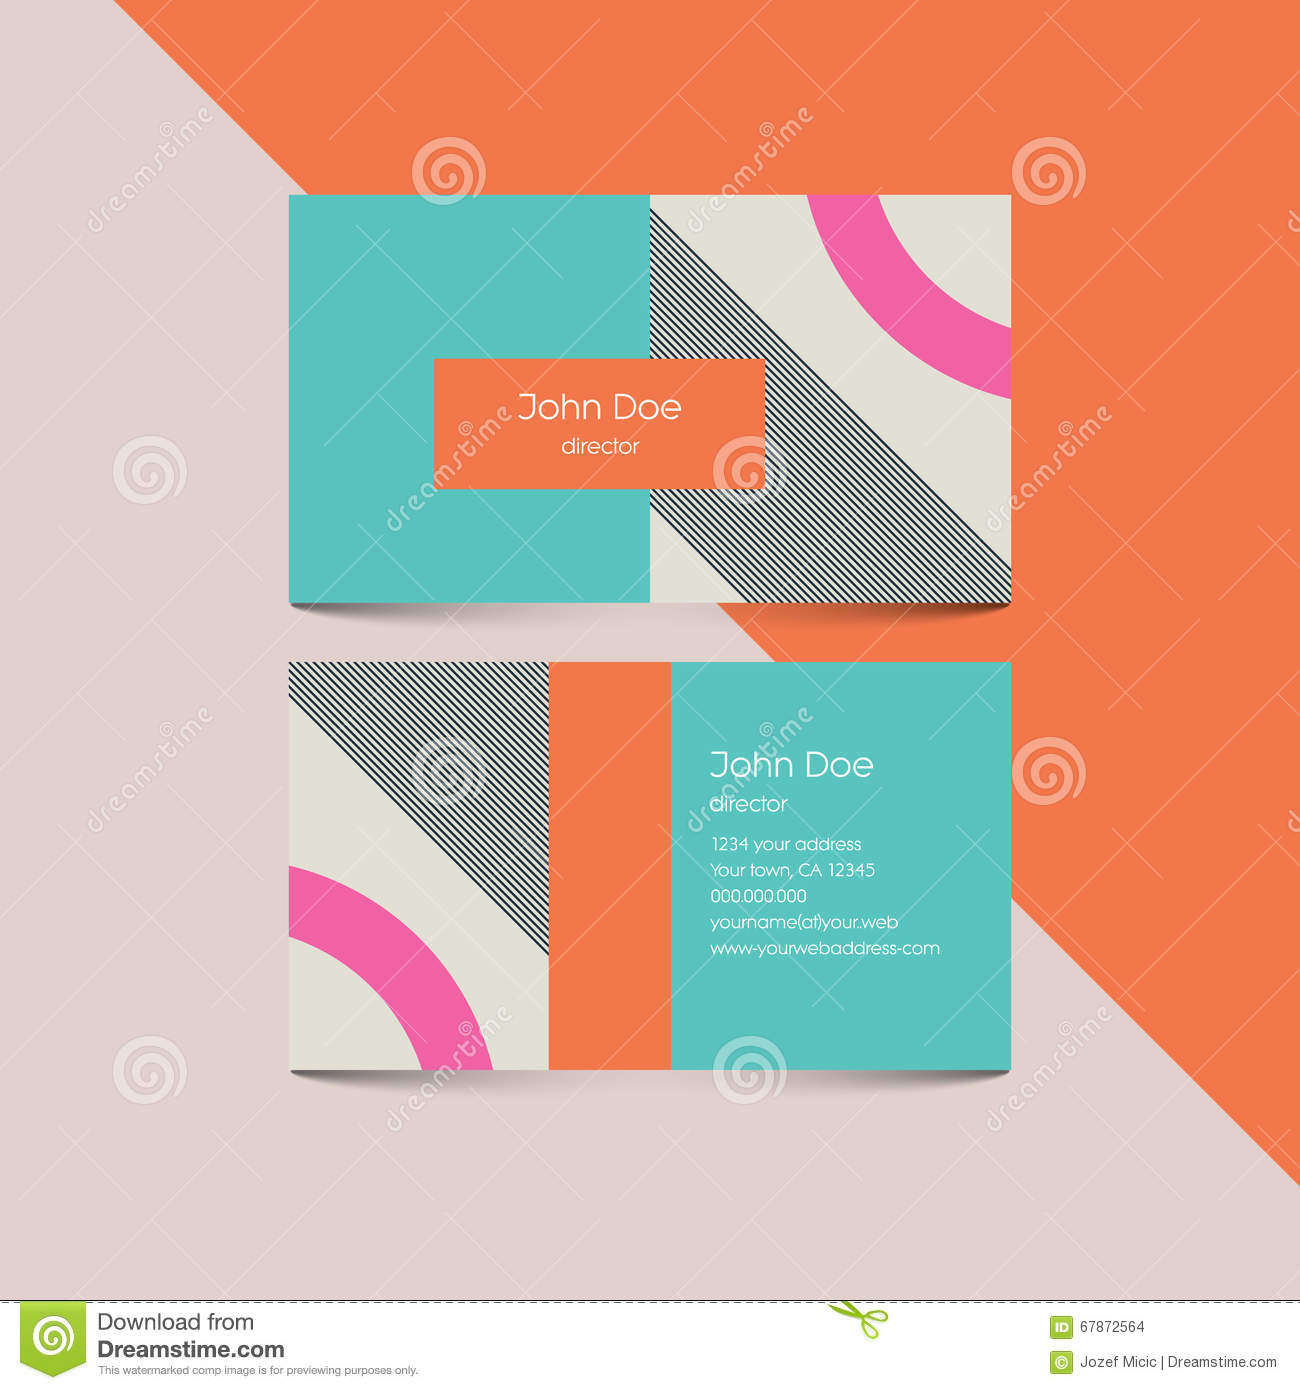 design business card template with 80s style background. Modern retro ...